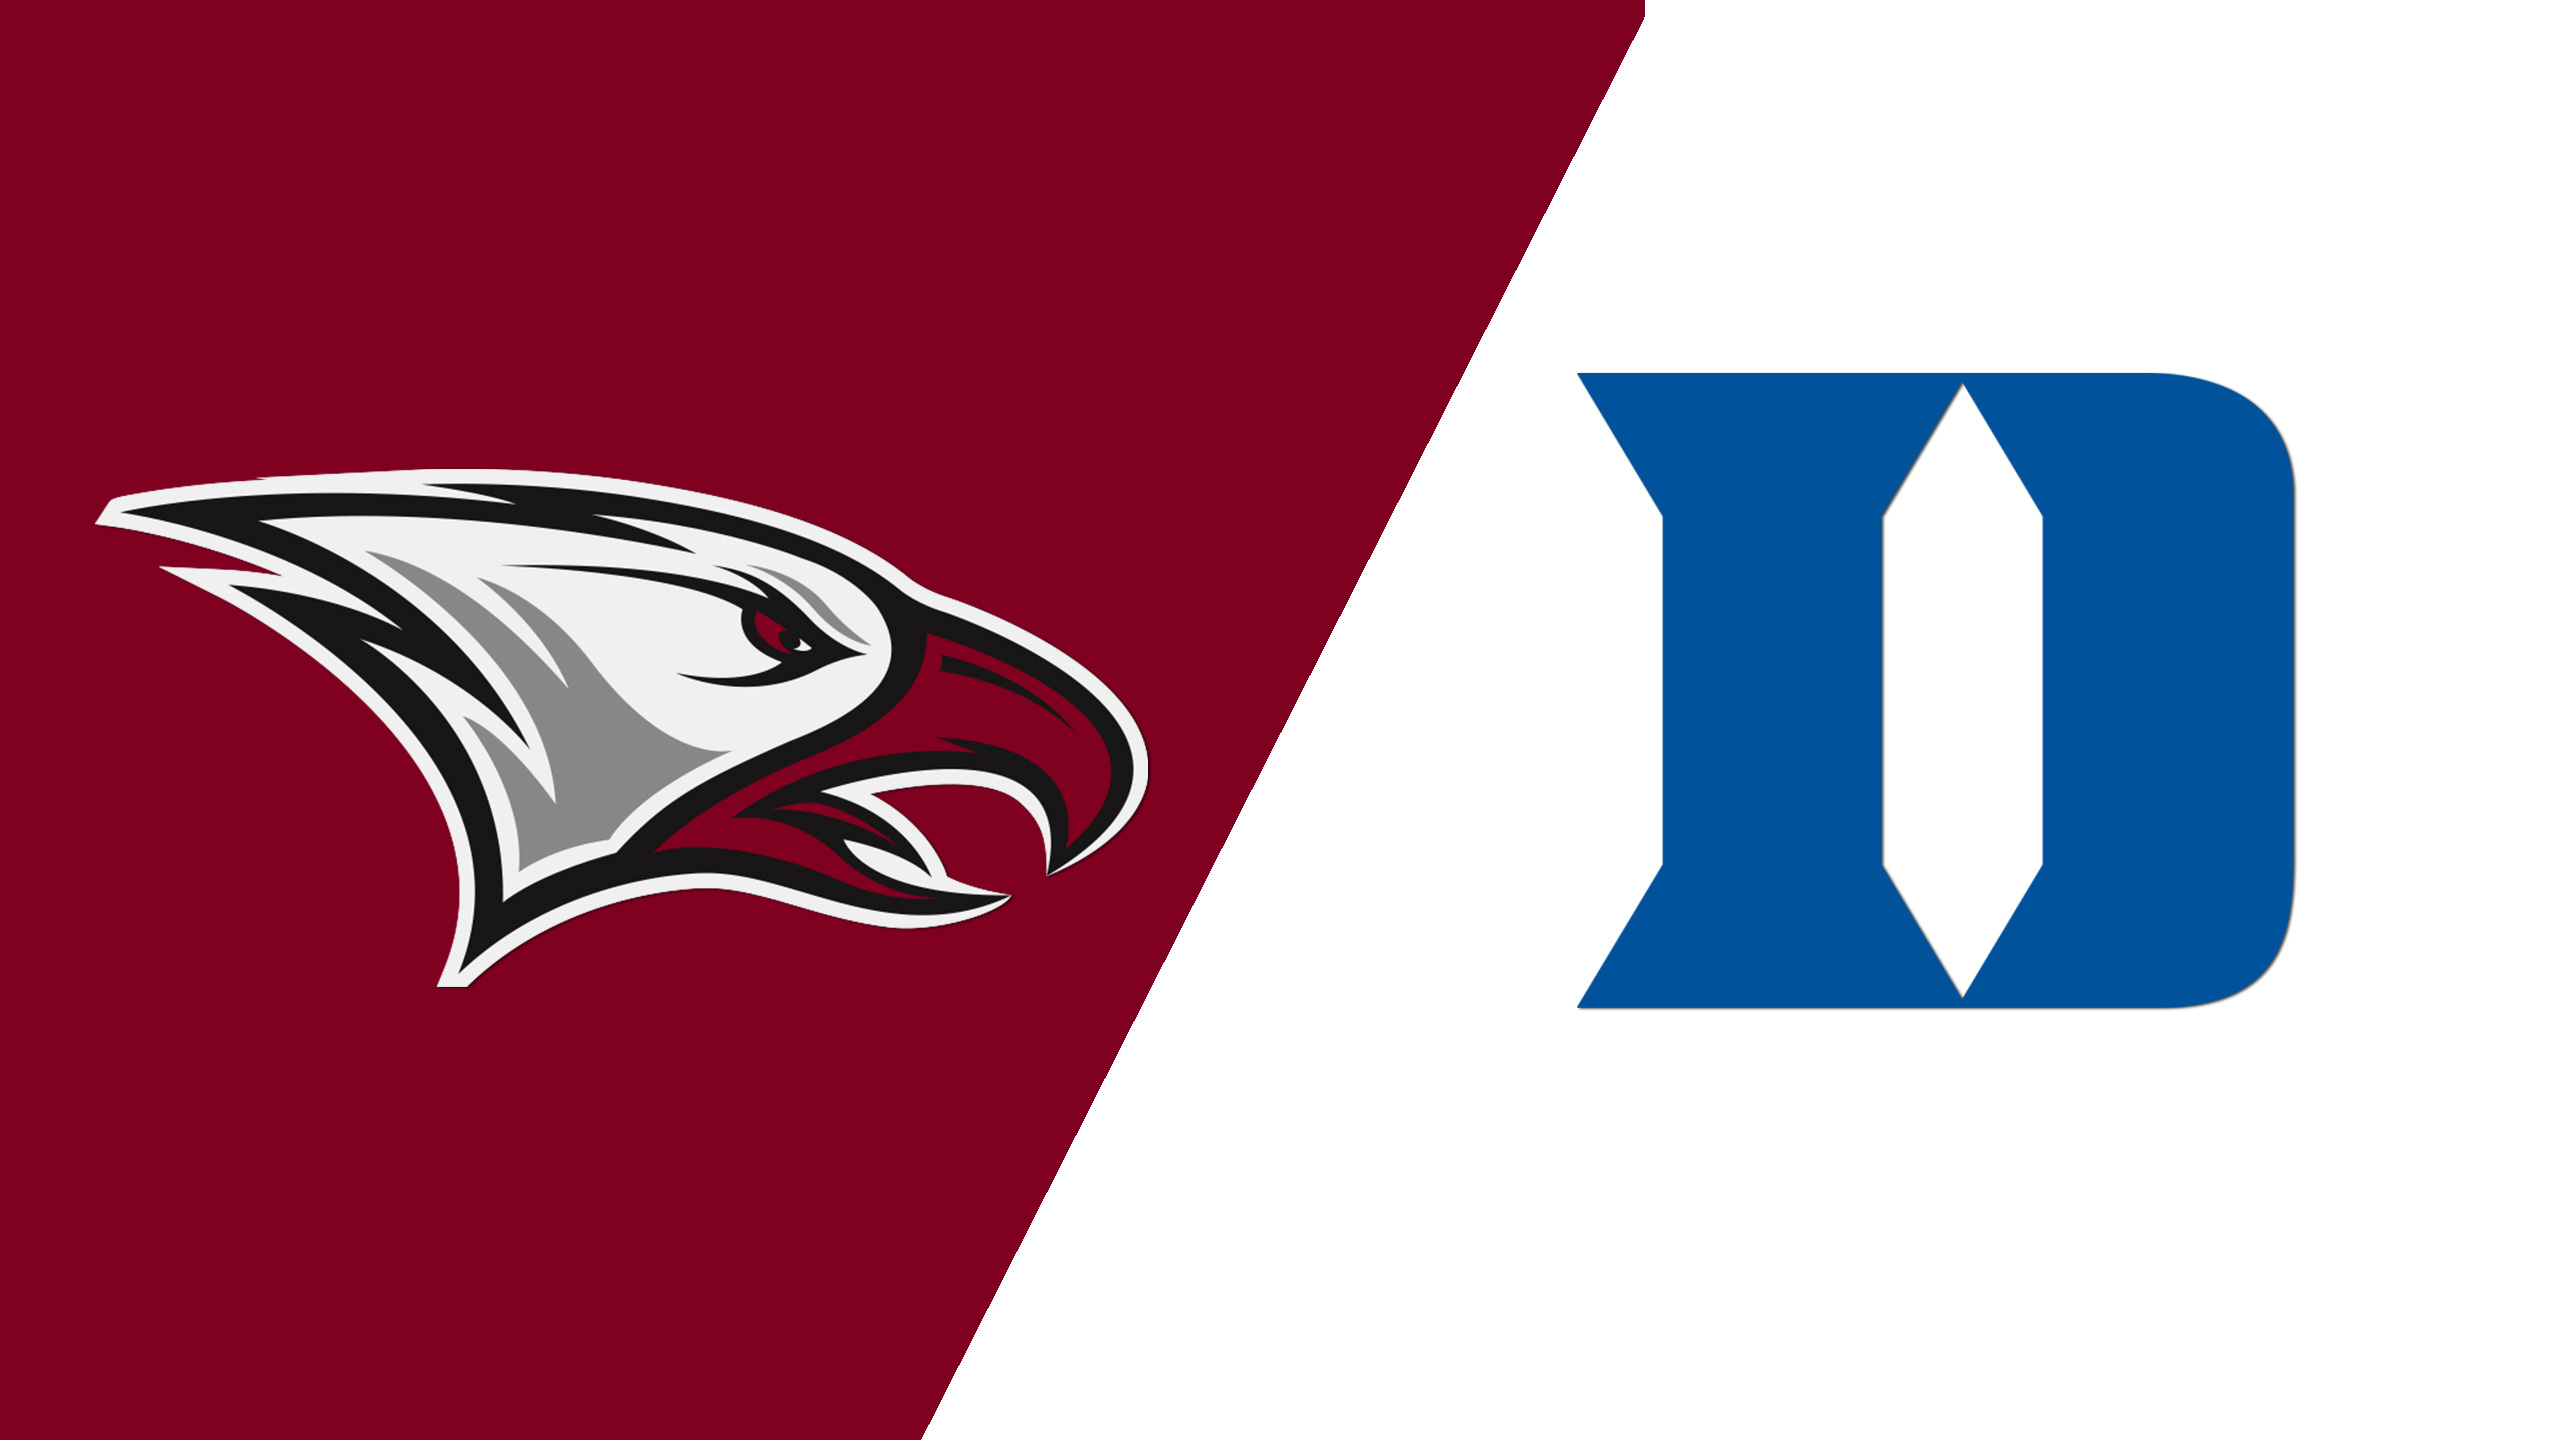 North Carolina Central vs. Duke (Football)